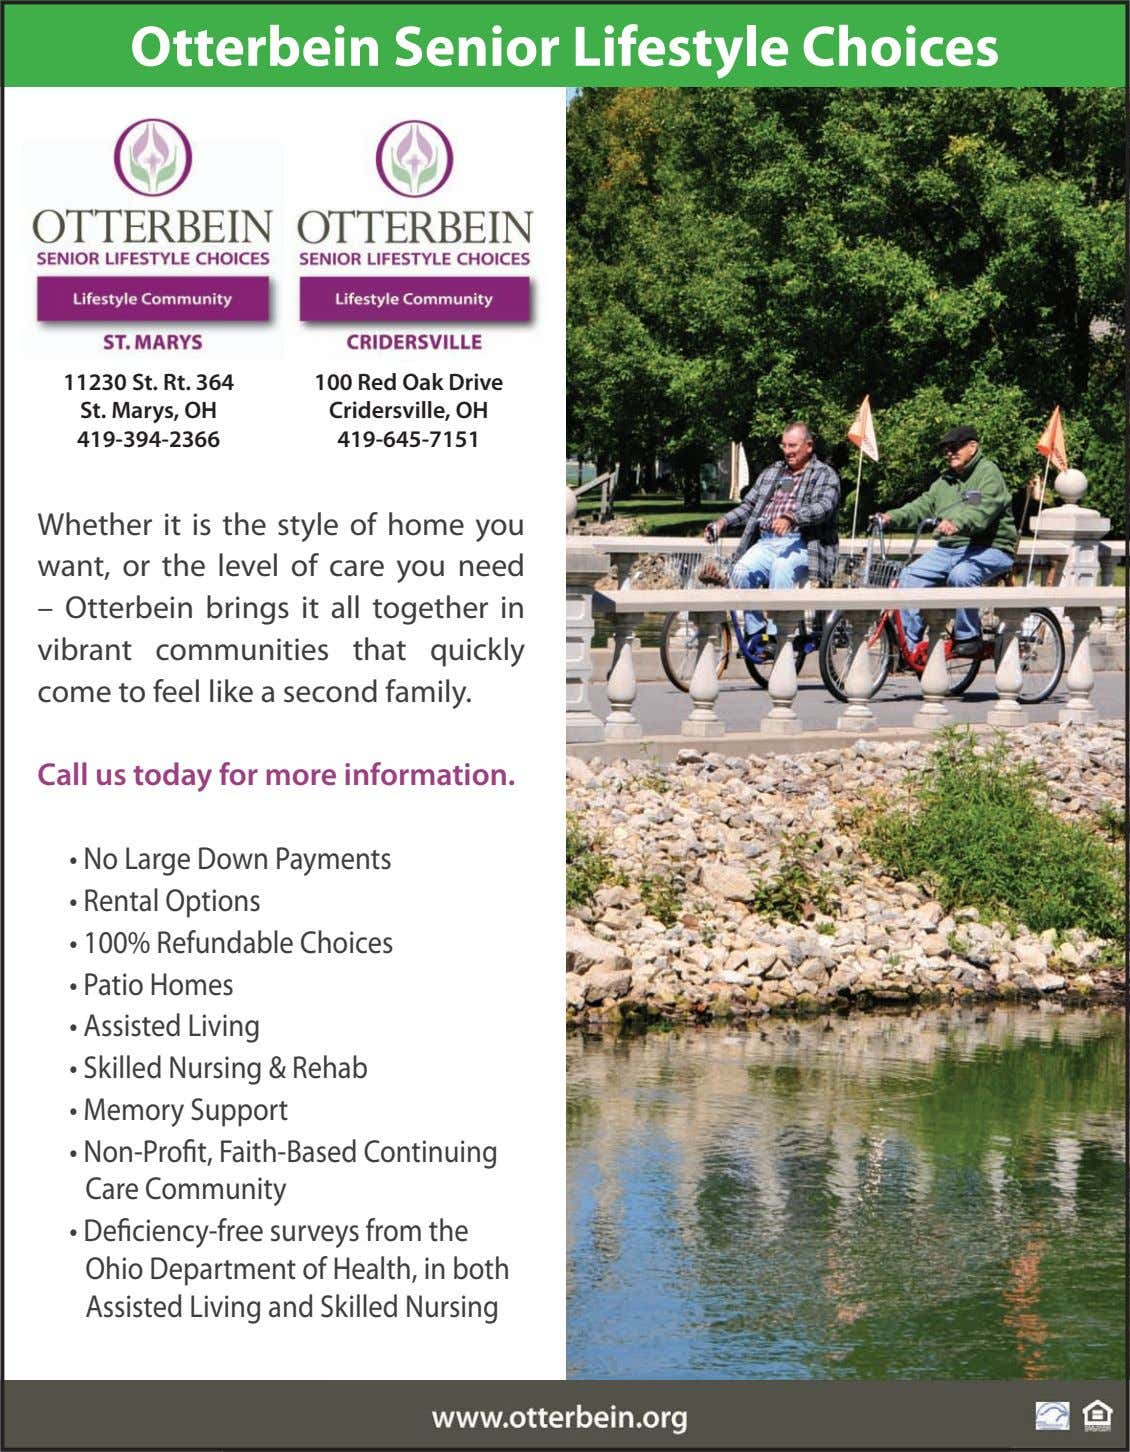 Otterbein Senior Lifestyle Choices 11230 St. Rt. 364 St. Marys, OH 100 Red Oak Drive